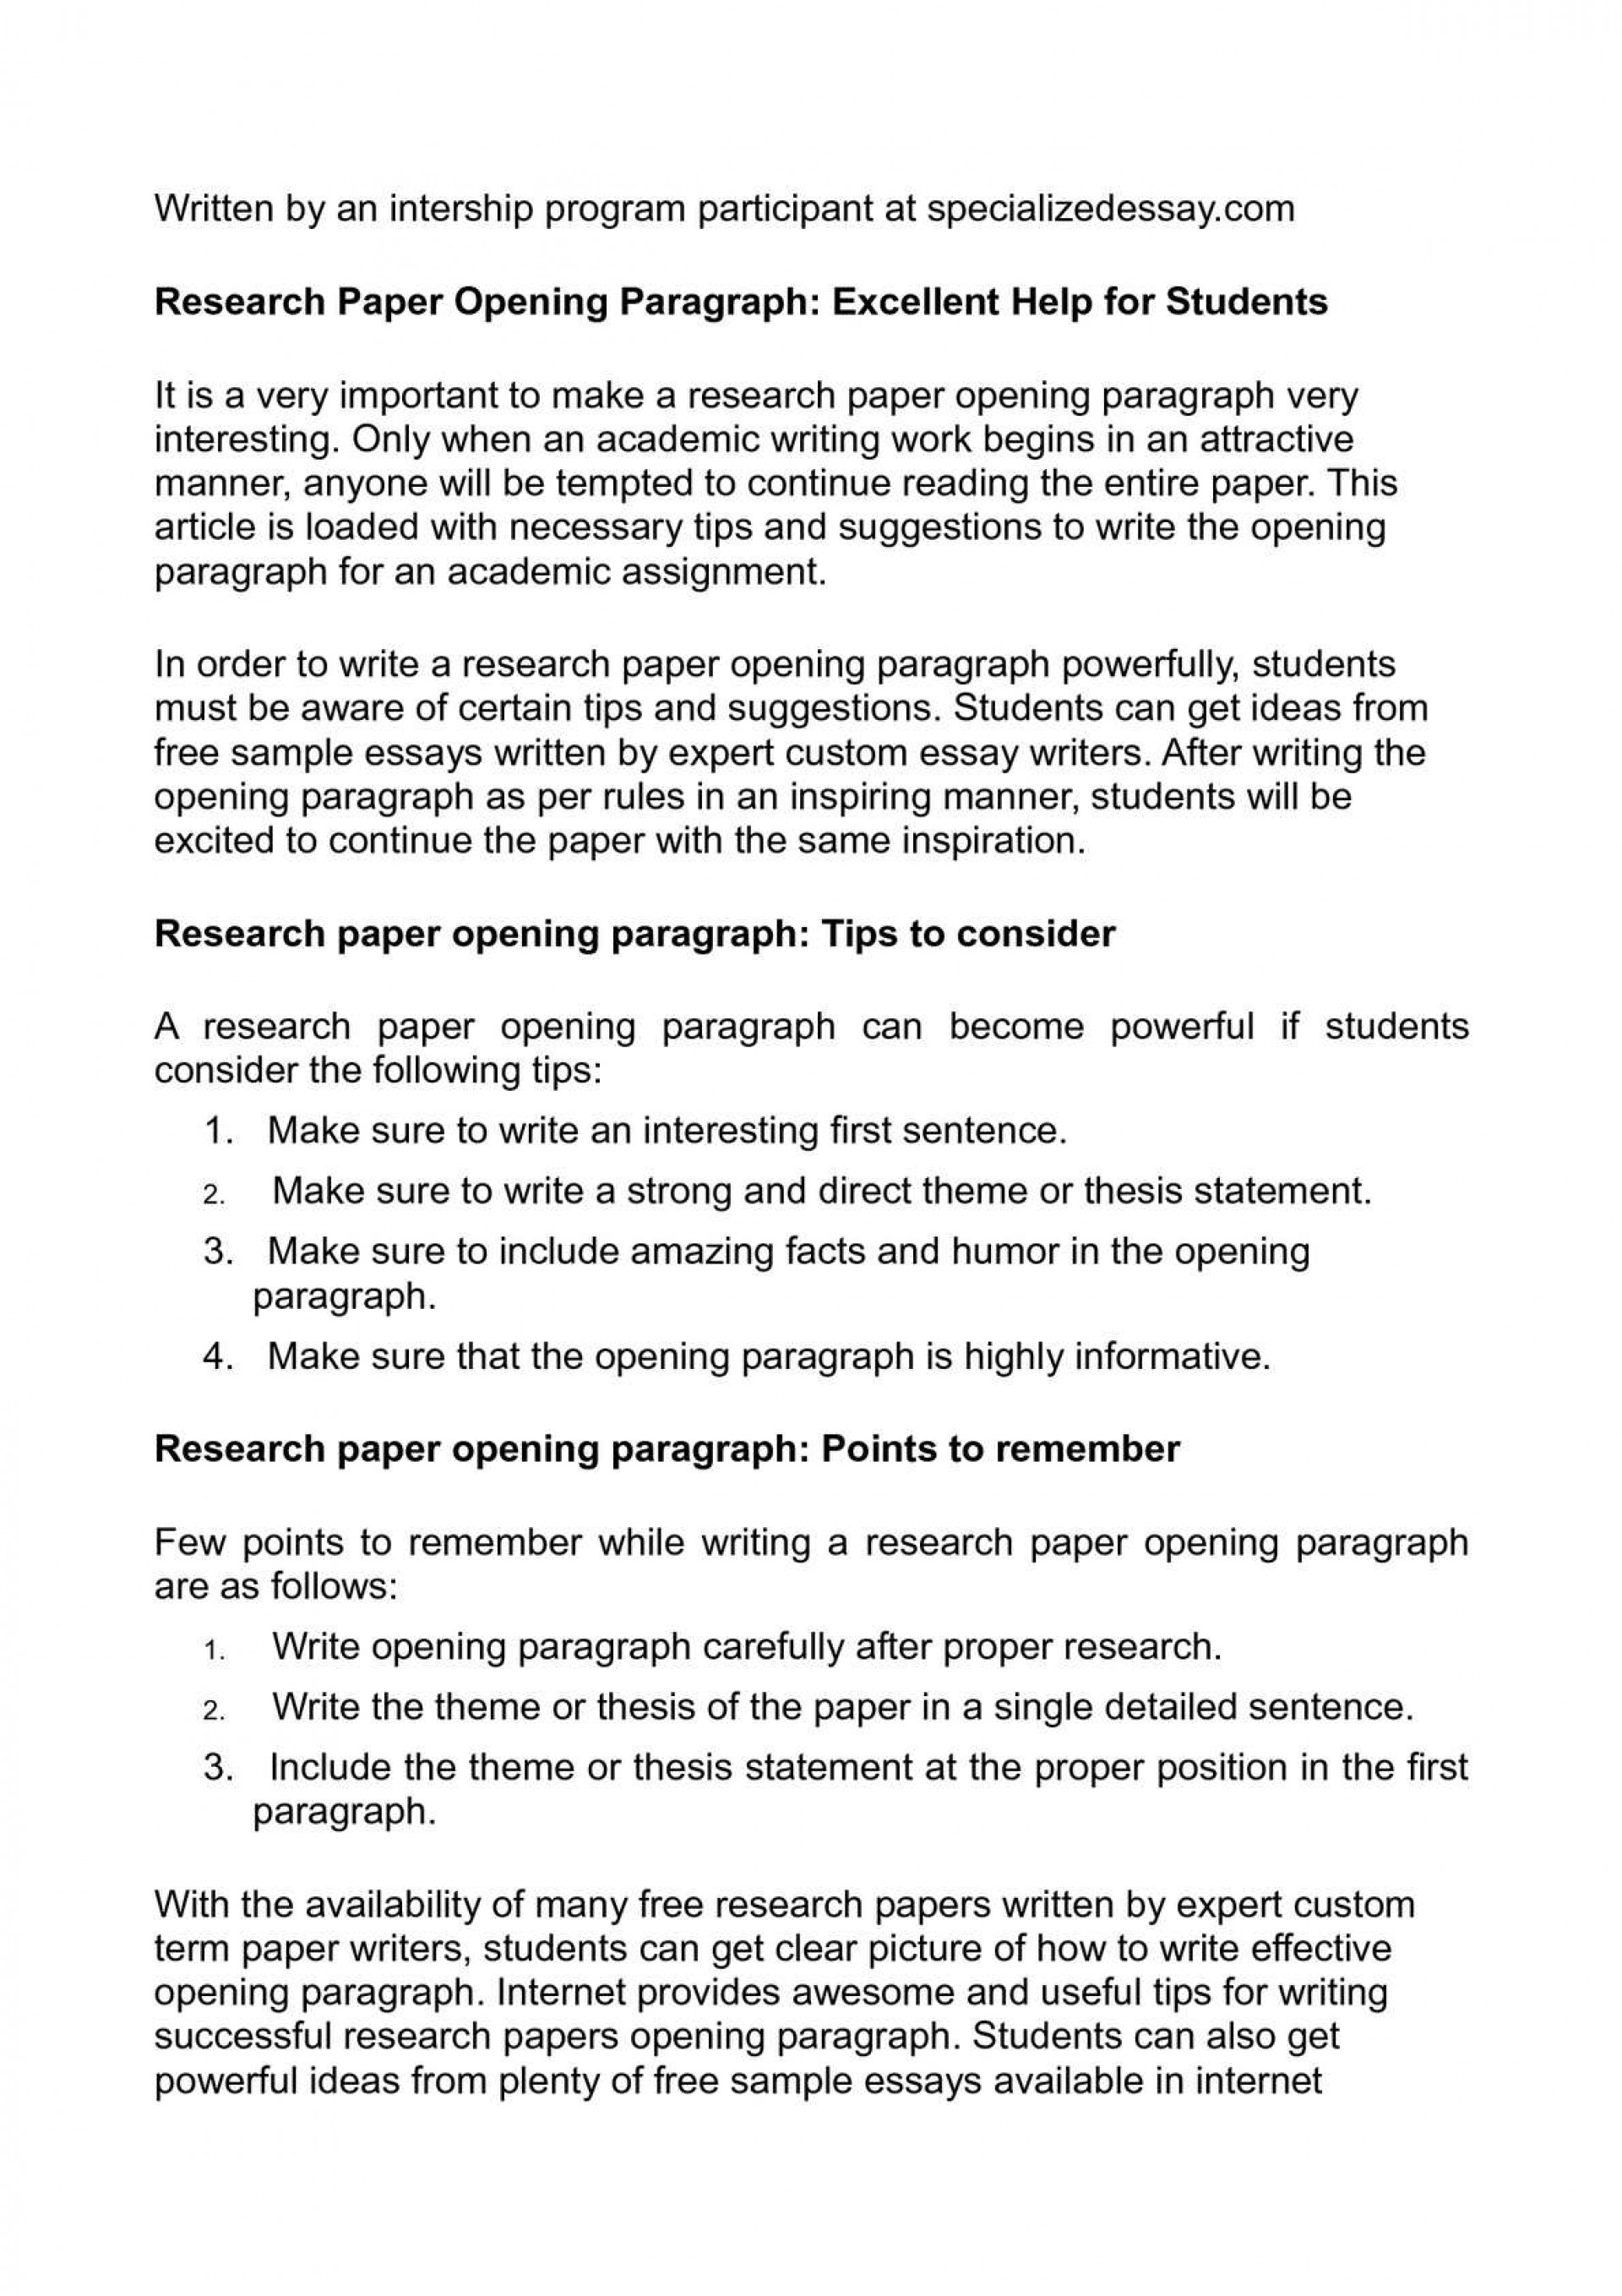 003 Research Paper Good Opening Paragraph For Rare Introductory A Conclusion Introduction 1920